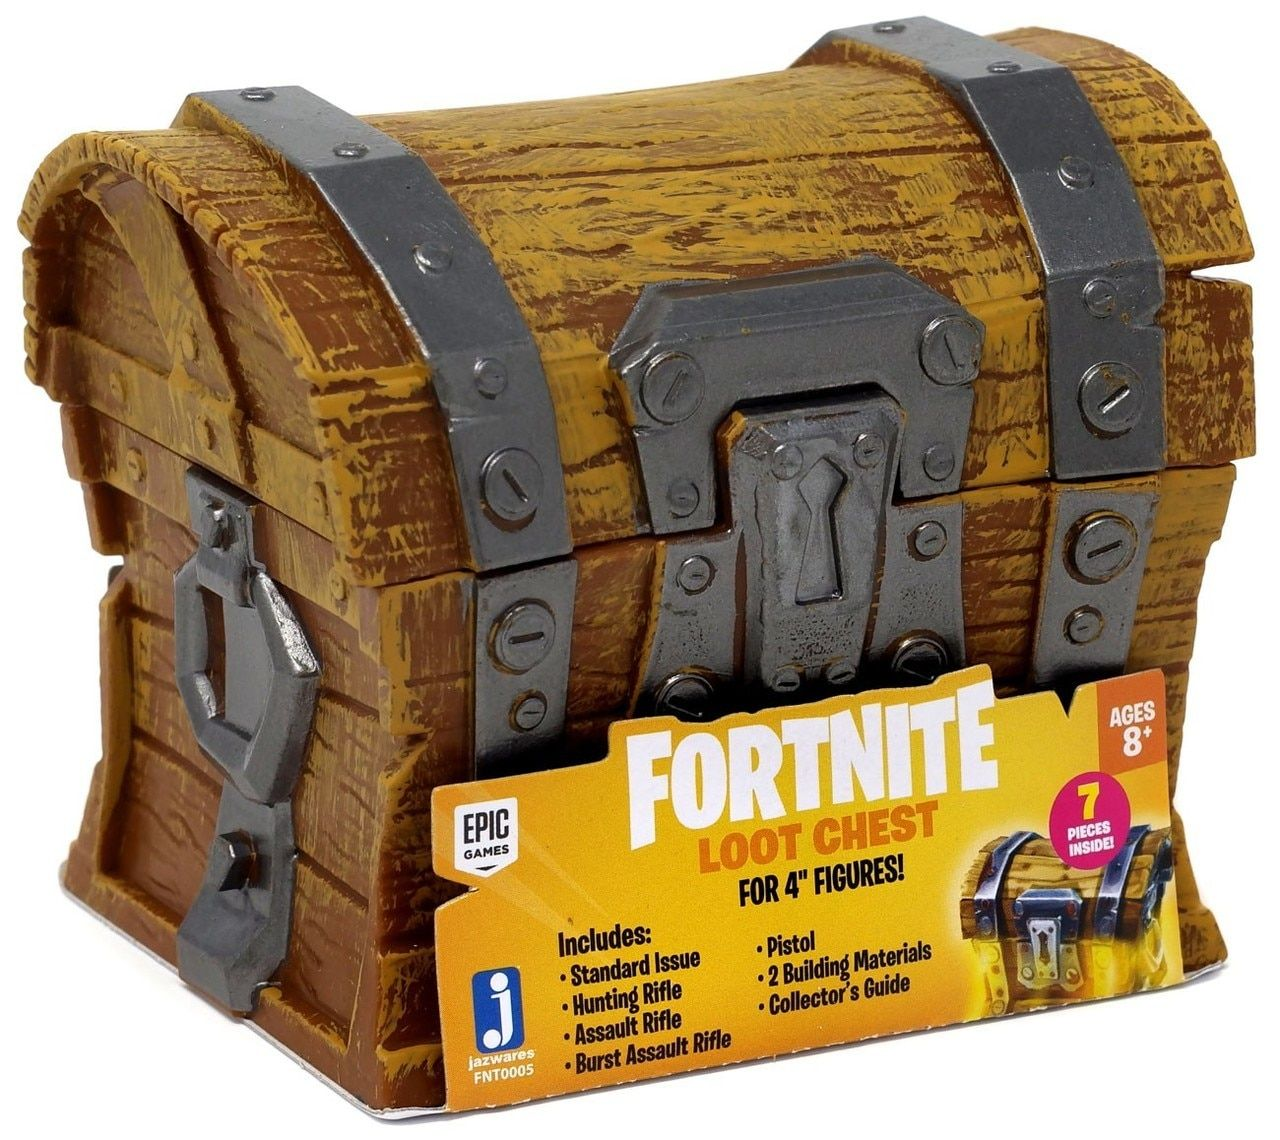 Fortnite Standard Issue Loot Chest In 2019 Treasure Boxes